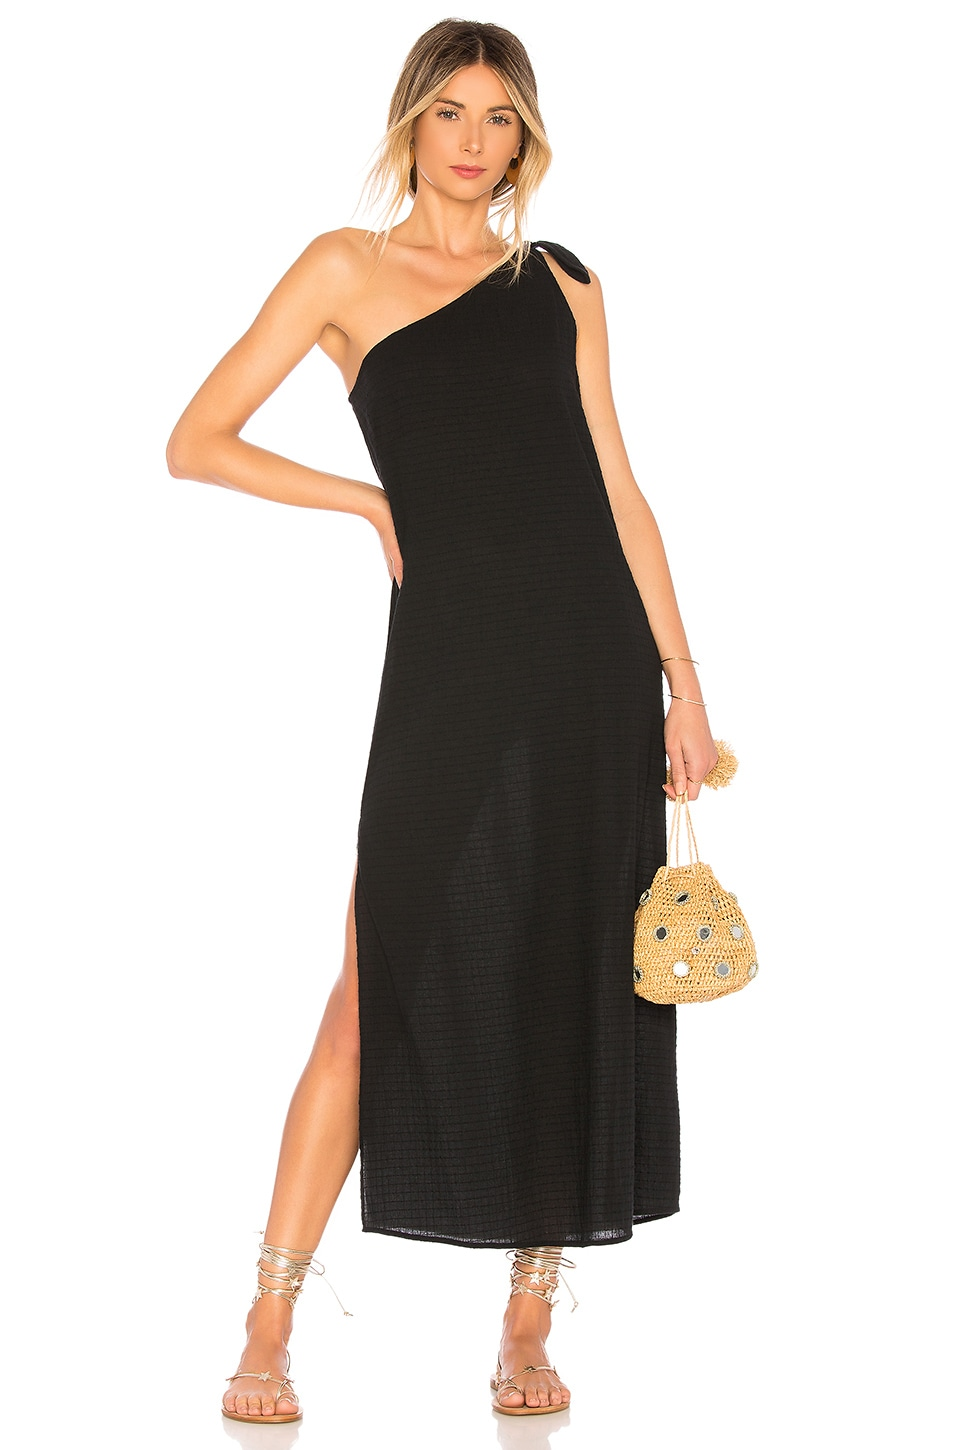 Mara Hoffman Camilla Dress in Black